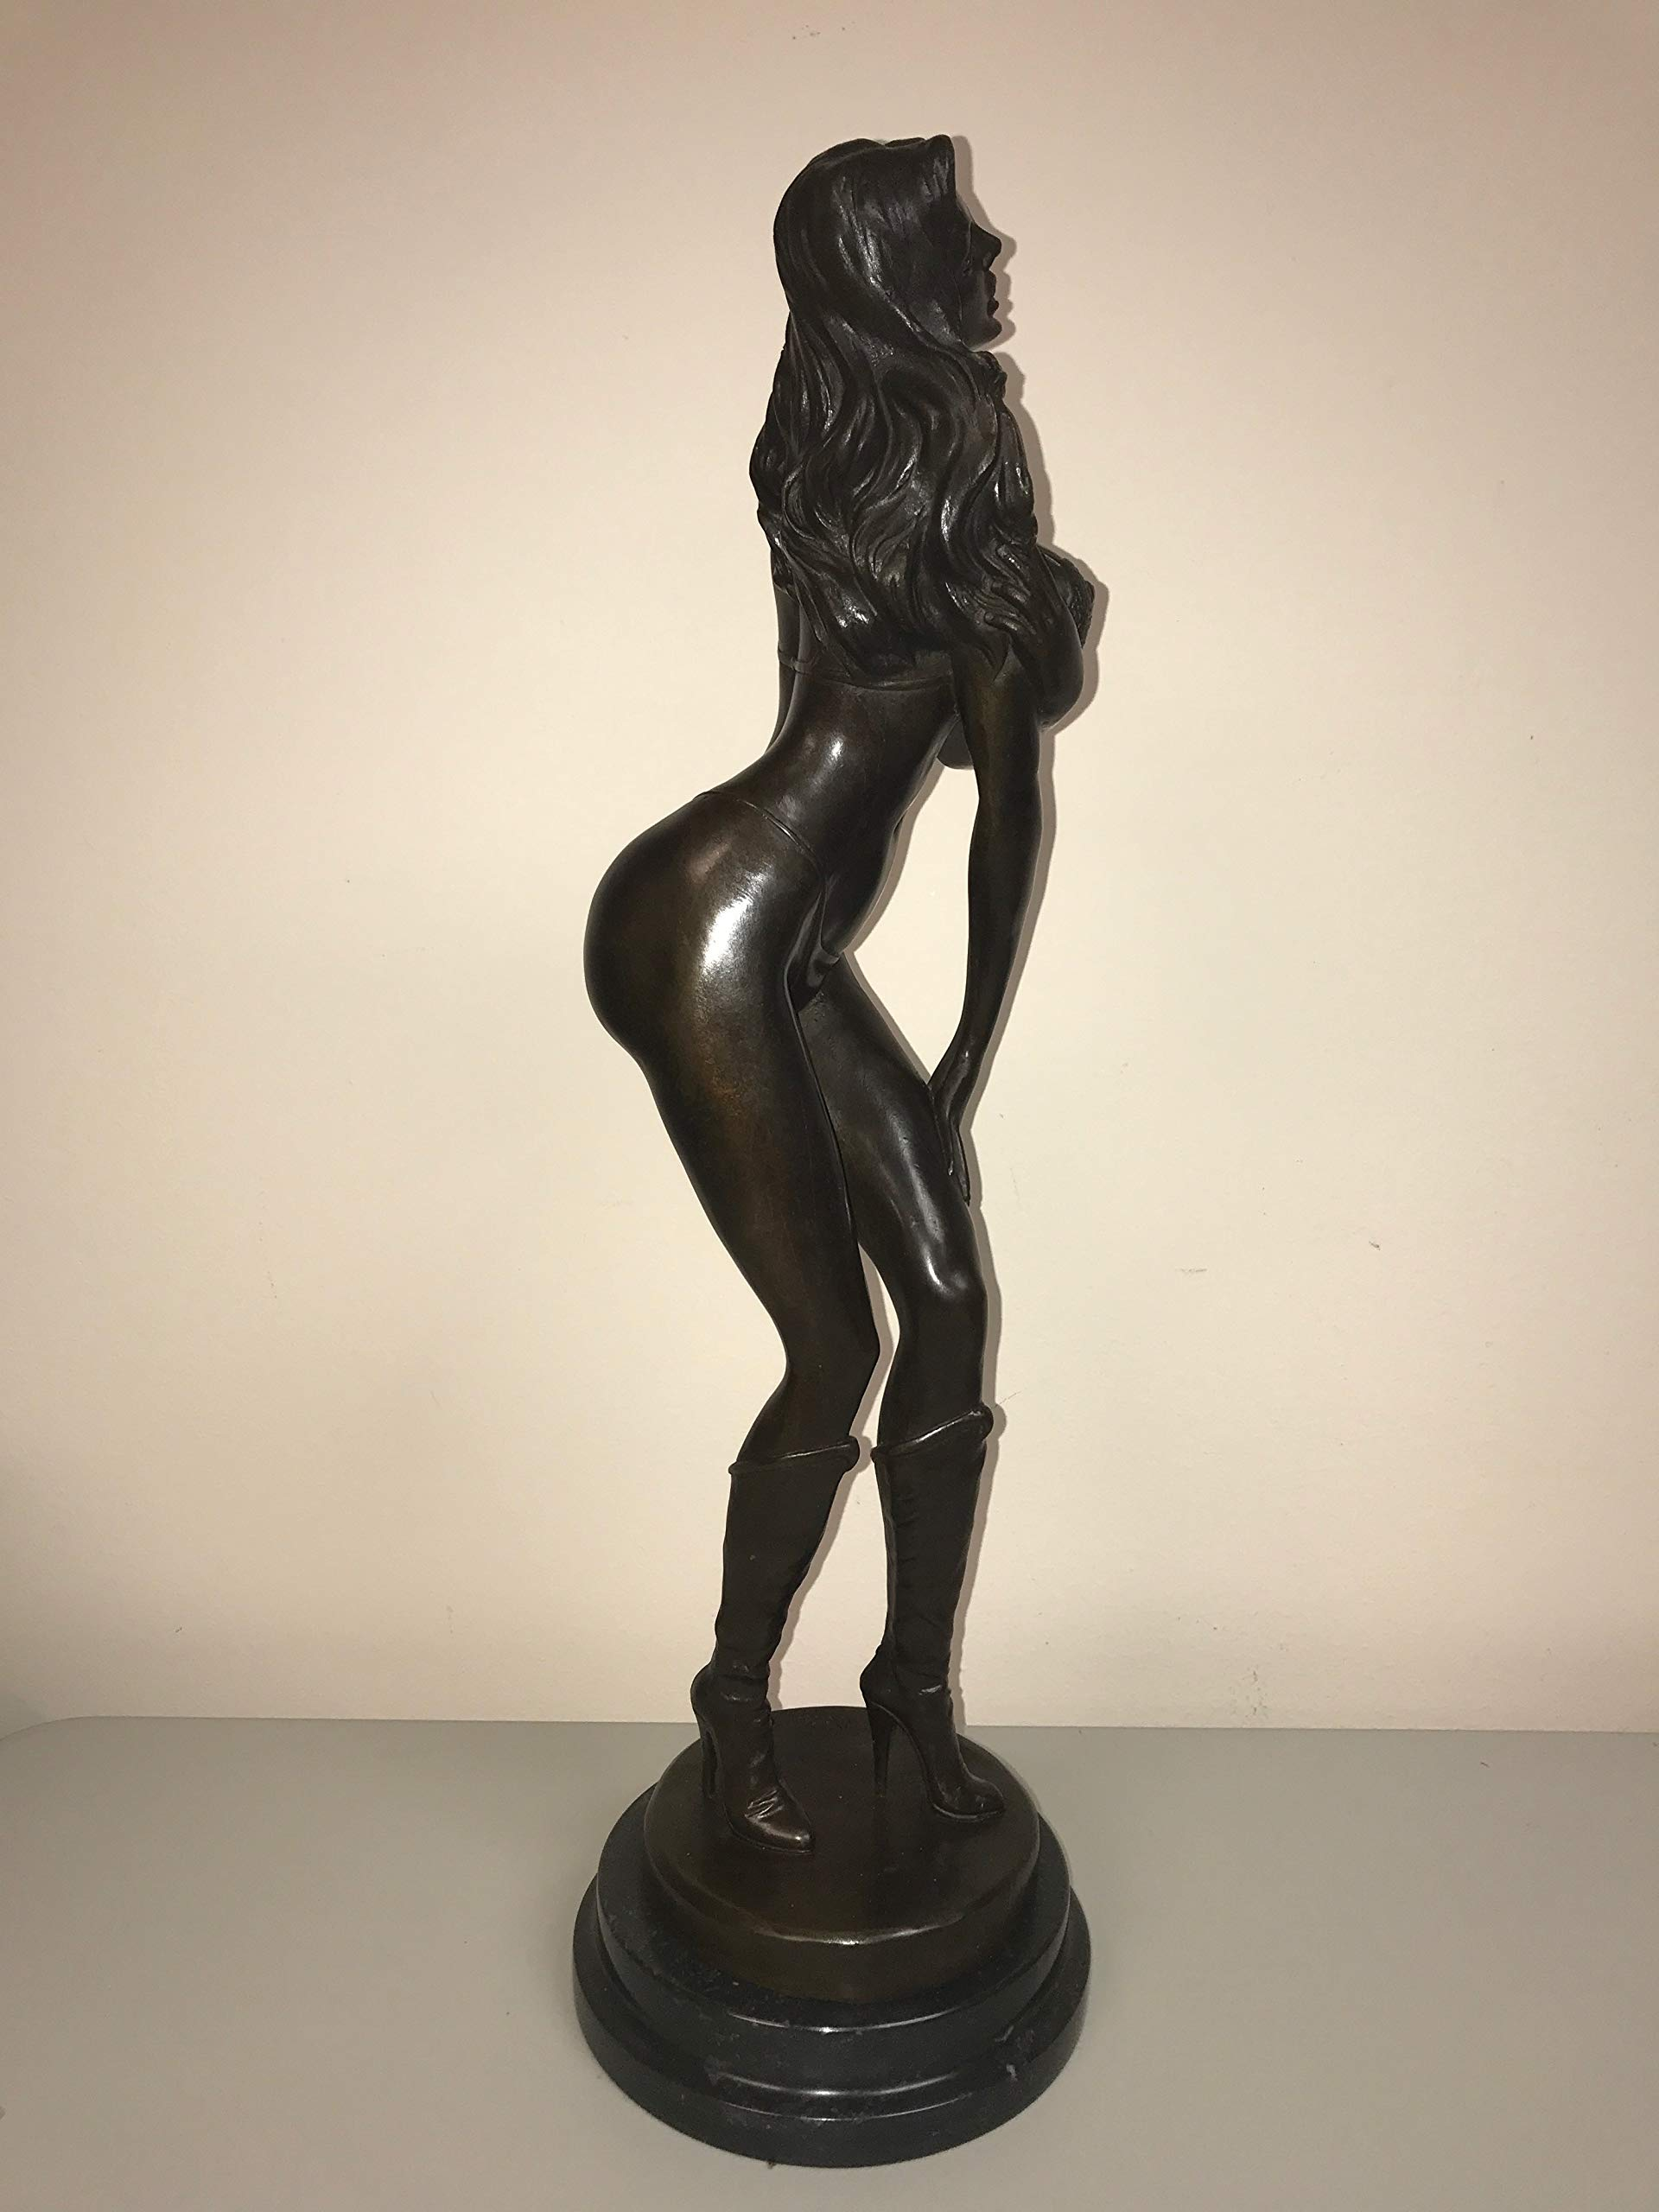 Intercourse Statue - Real Bronze European Naked Statue of Girl - Nipples Poppin Out of Bra - Big Ass and Breasts - Tease - Sex - Sex Decorations for Party